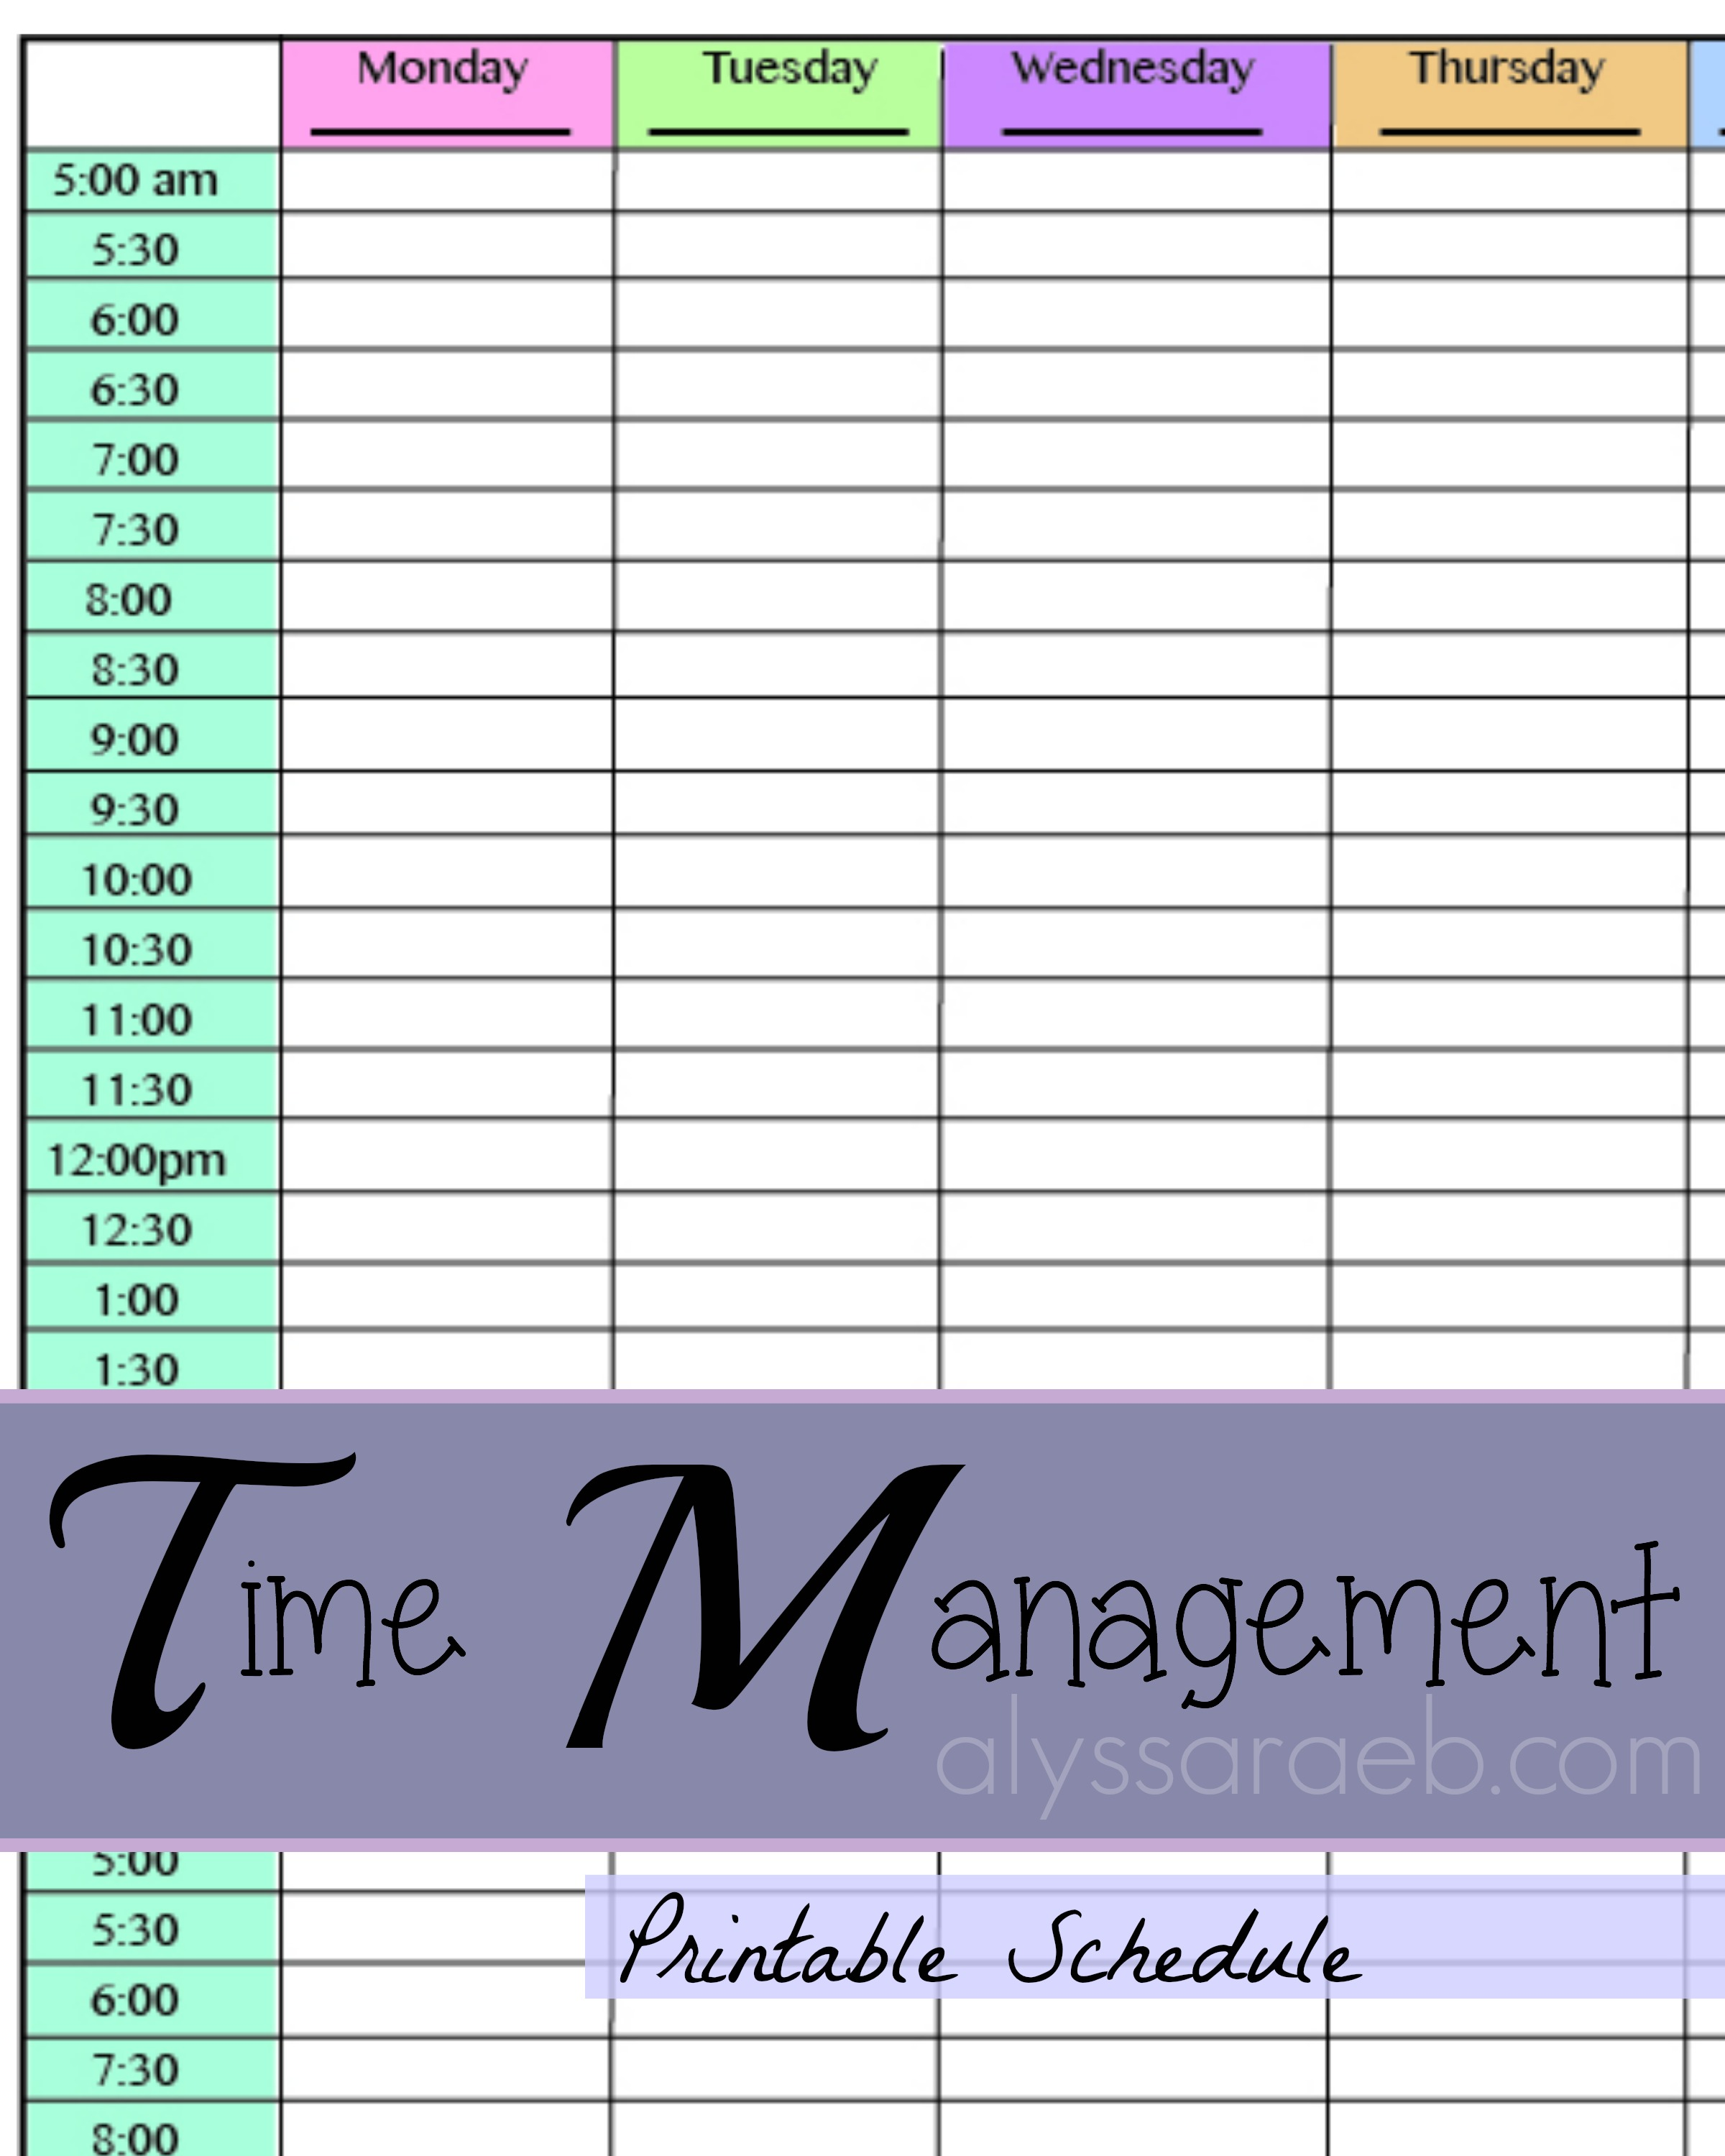 Printable Schedule Alyssa Rae